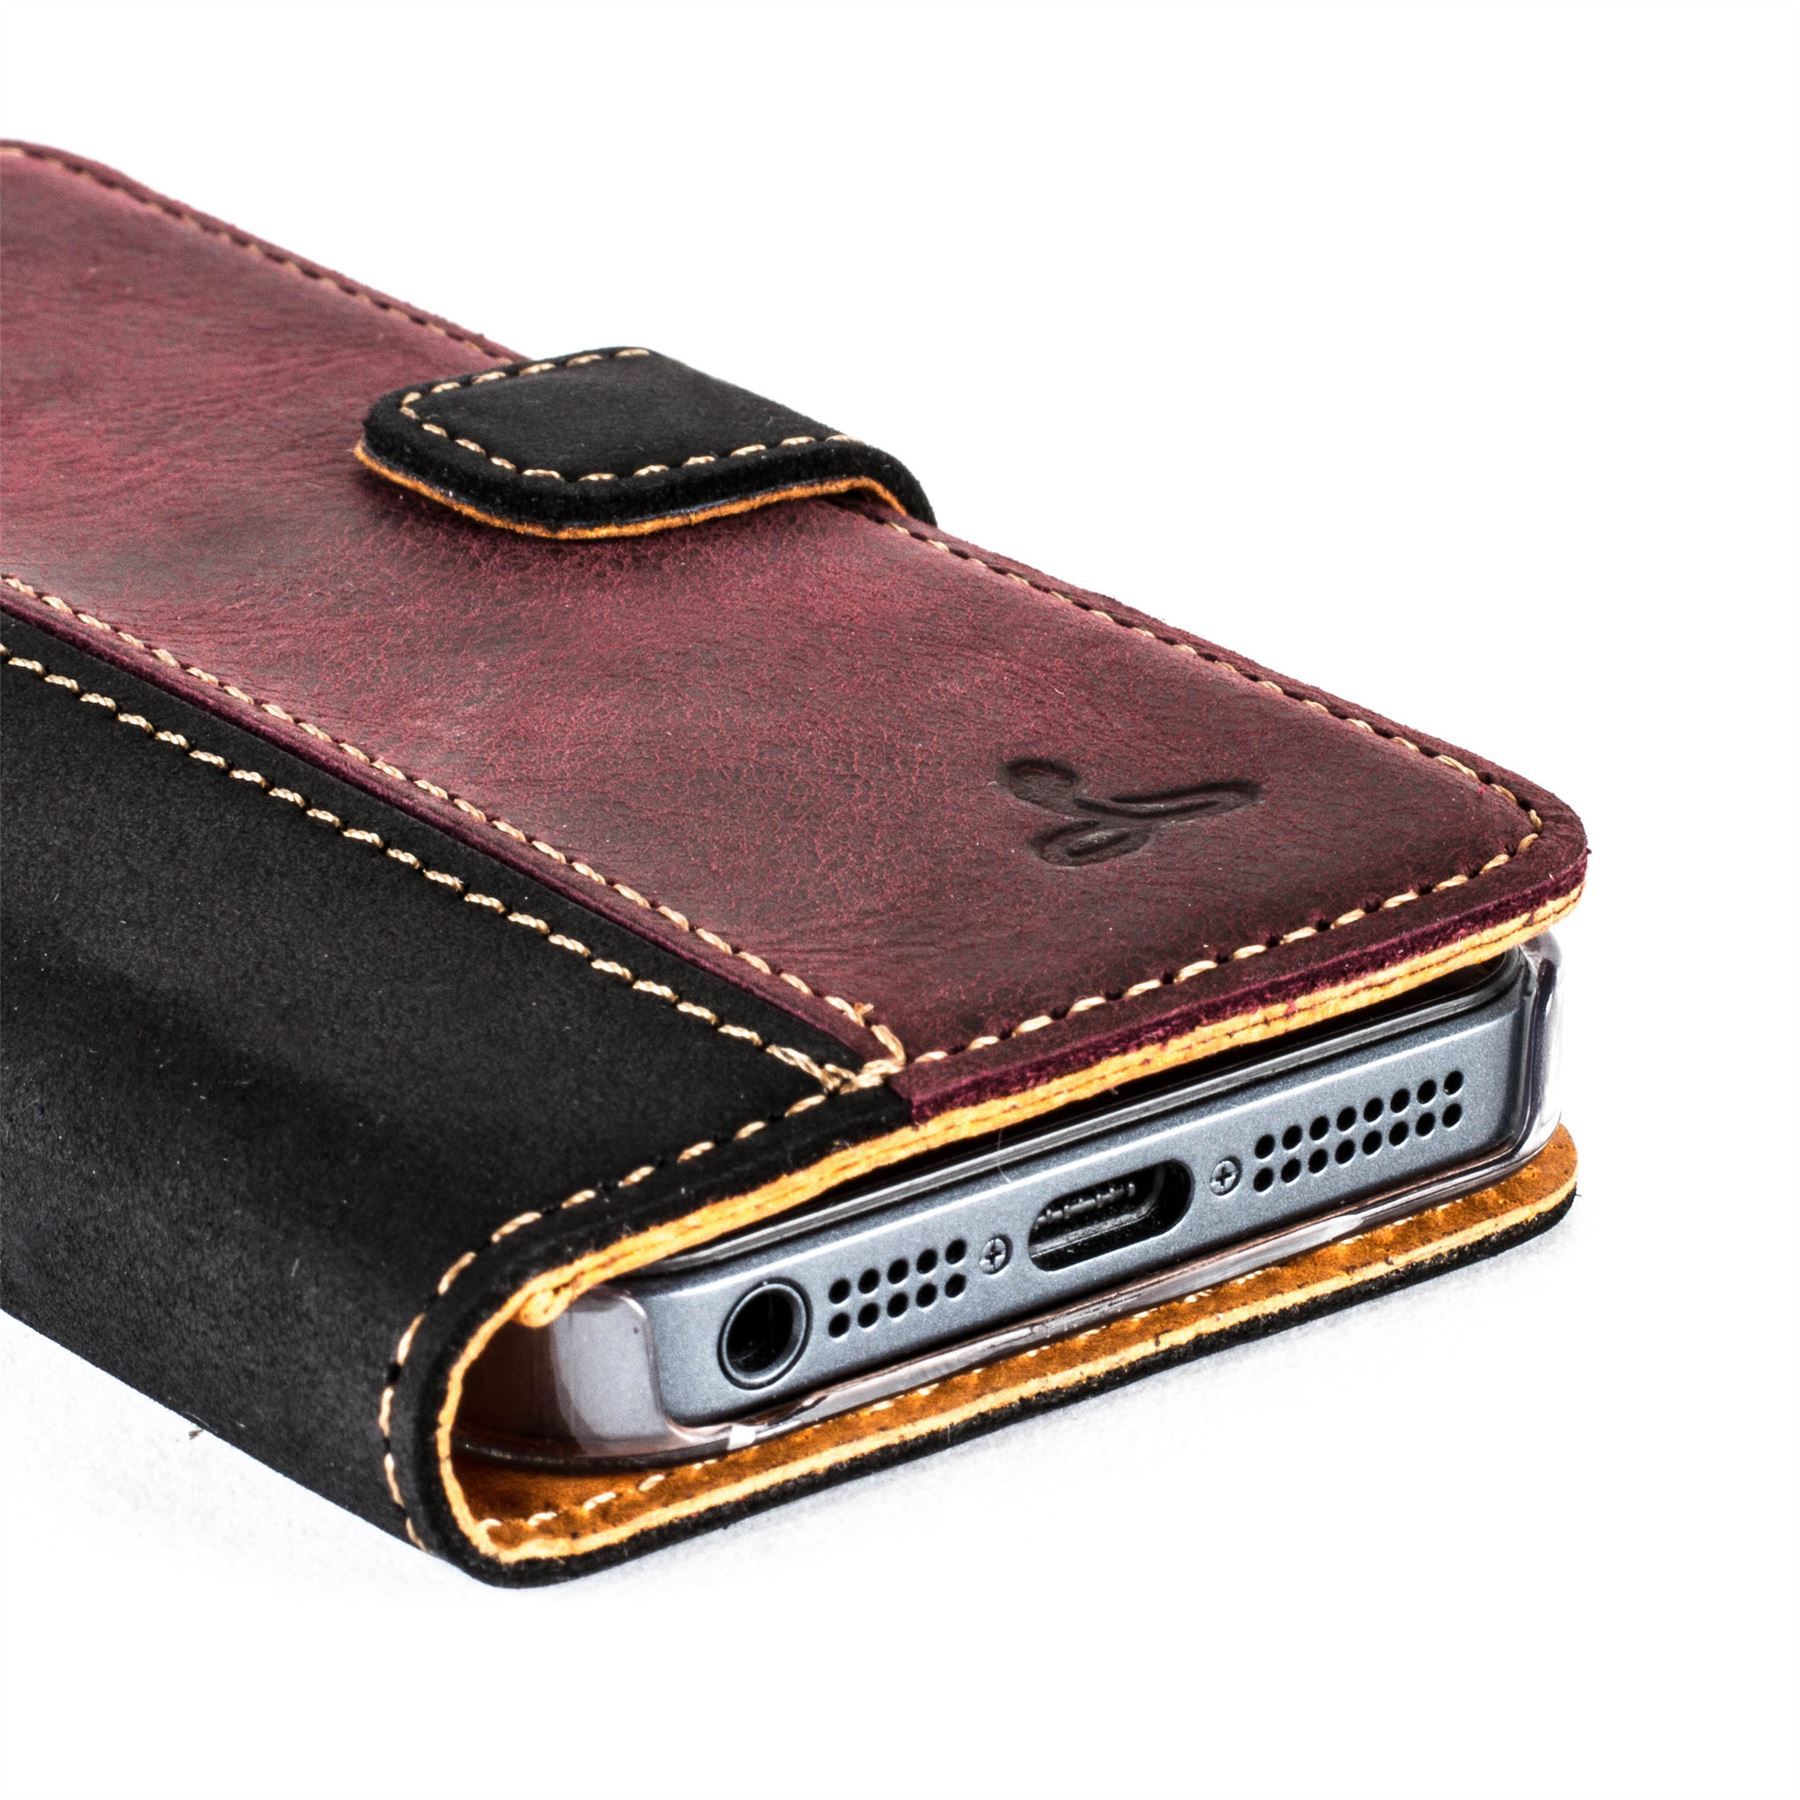 Snakehive apple iphone 5 5s vintage nubuck leather wallet case cover ebay - Iphone 5s leather case ...